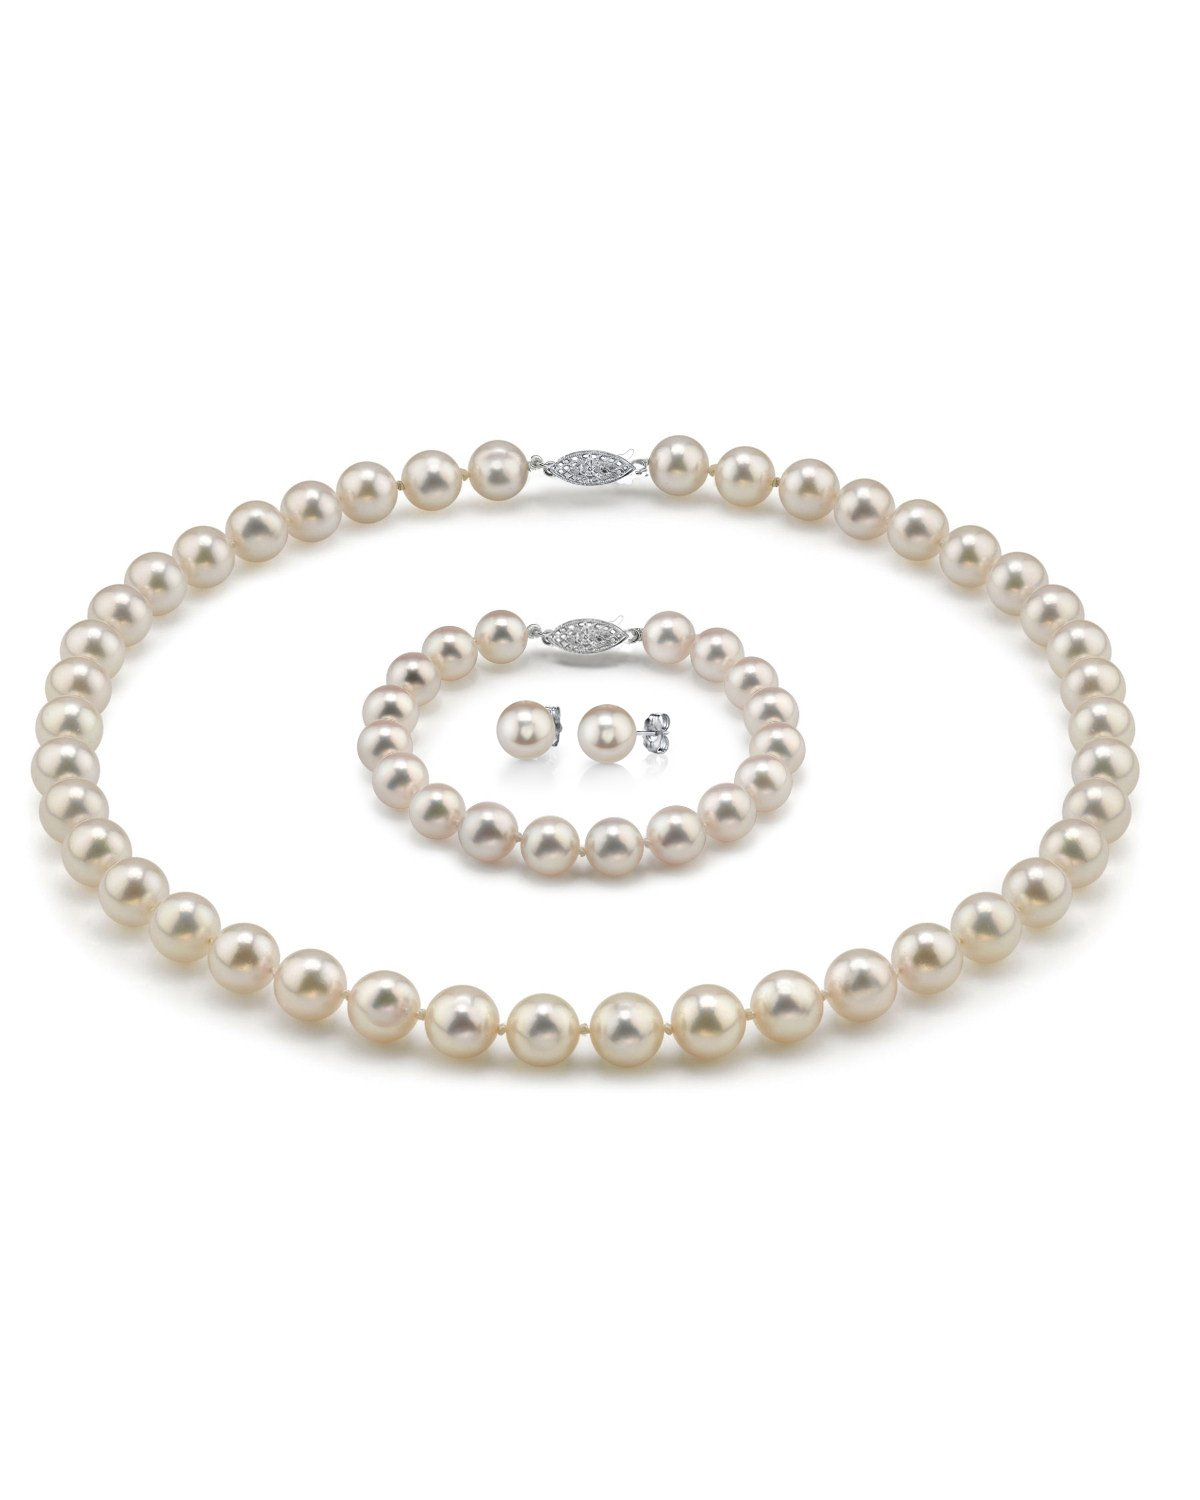 THE PEARL SOURCE 14K Gold 7-7.5mm Hanadama Quality Round White Akoya Cultured Pearl Necklace, Bracelet & Earrings Set in 18'' Princess Length for Women by The Pearl Source